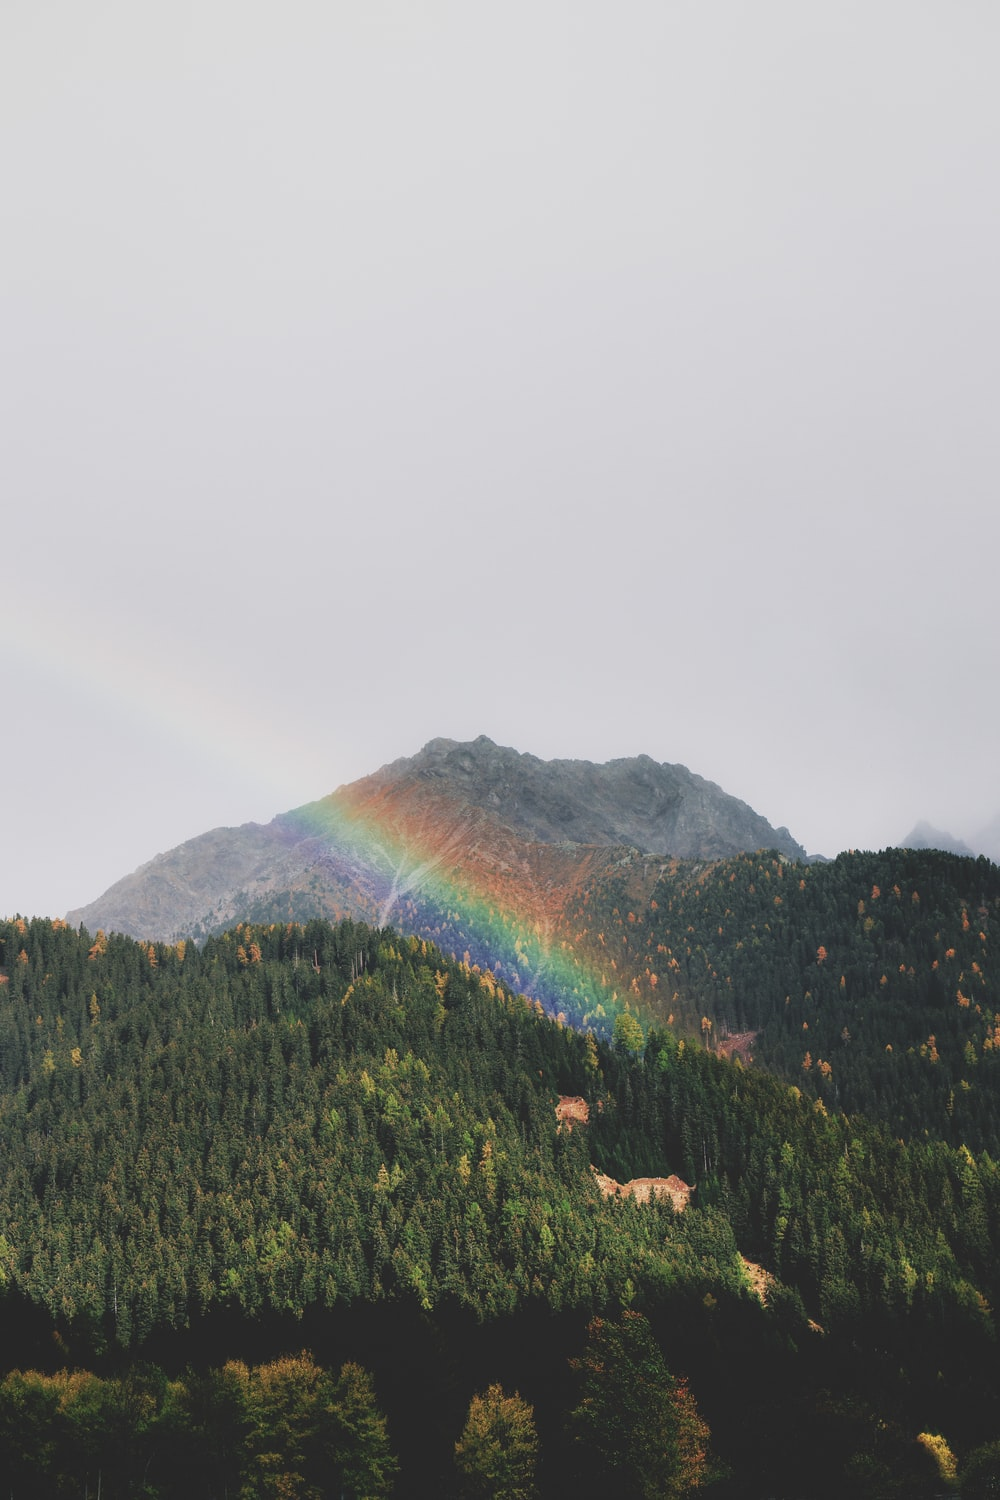 rainbow over green tree covered hill